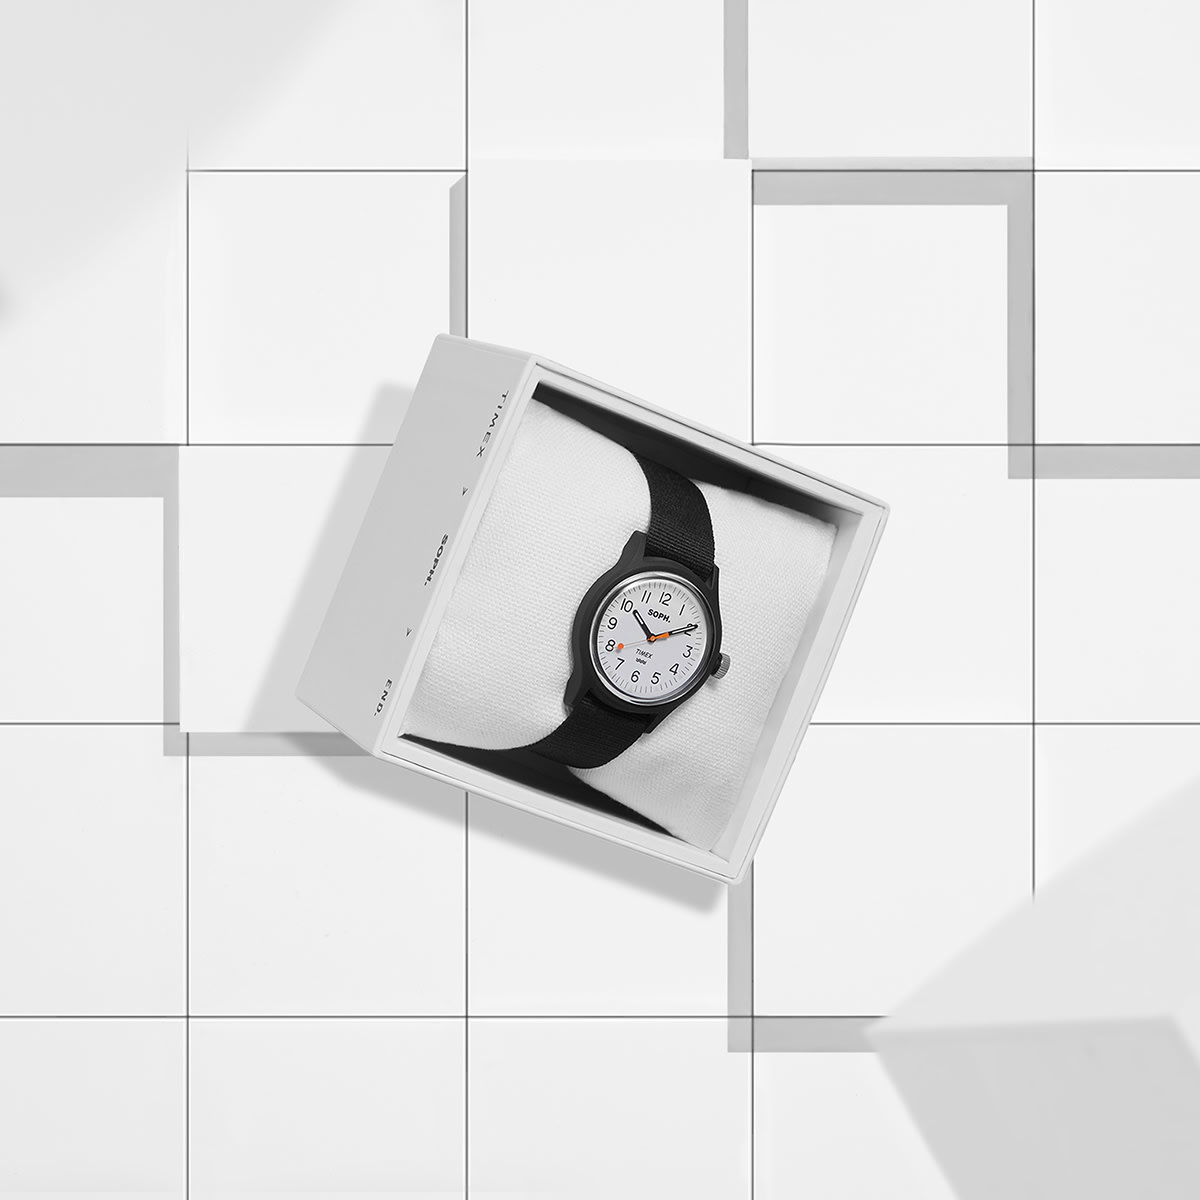 The END. x SOPH. x Timex MK1 watch in white.